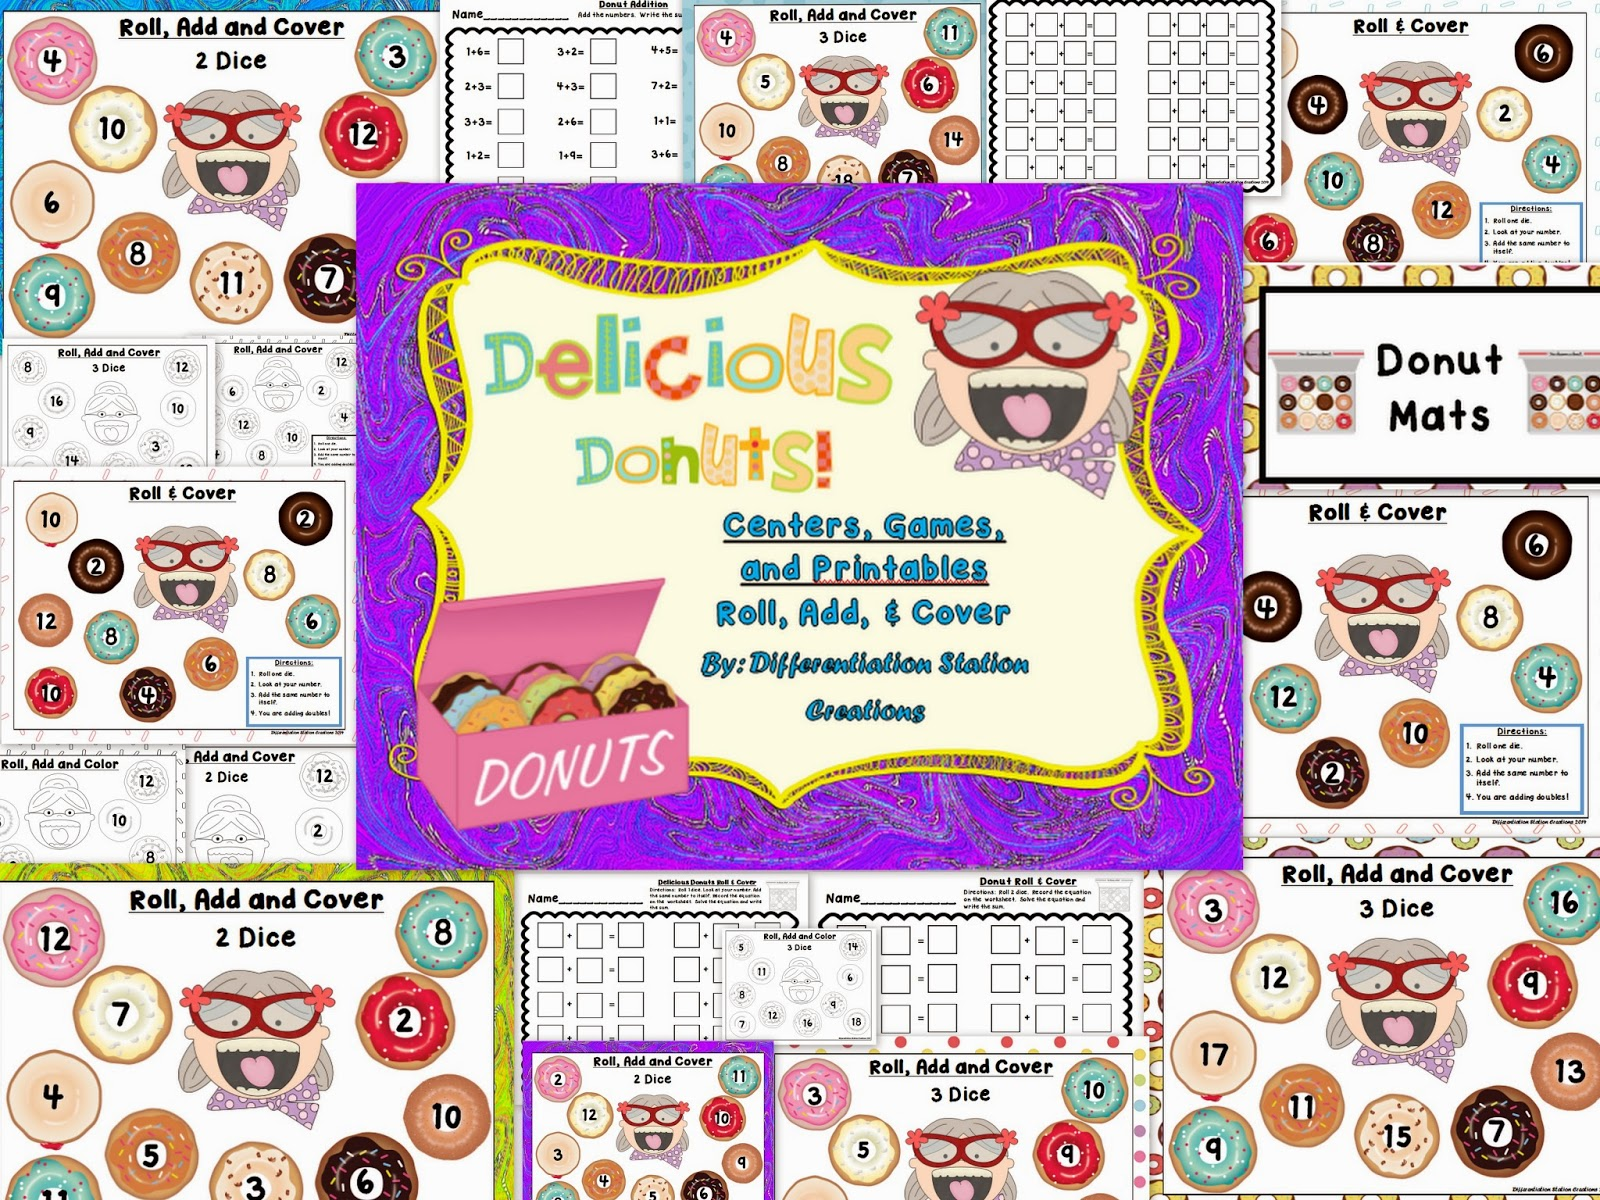 http://www.teacherspayteachers.com/Product/Delicious-Donuts-Roll-Add-Cover-Centers-Games-and-Printables-1144890